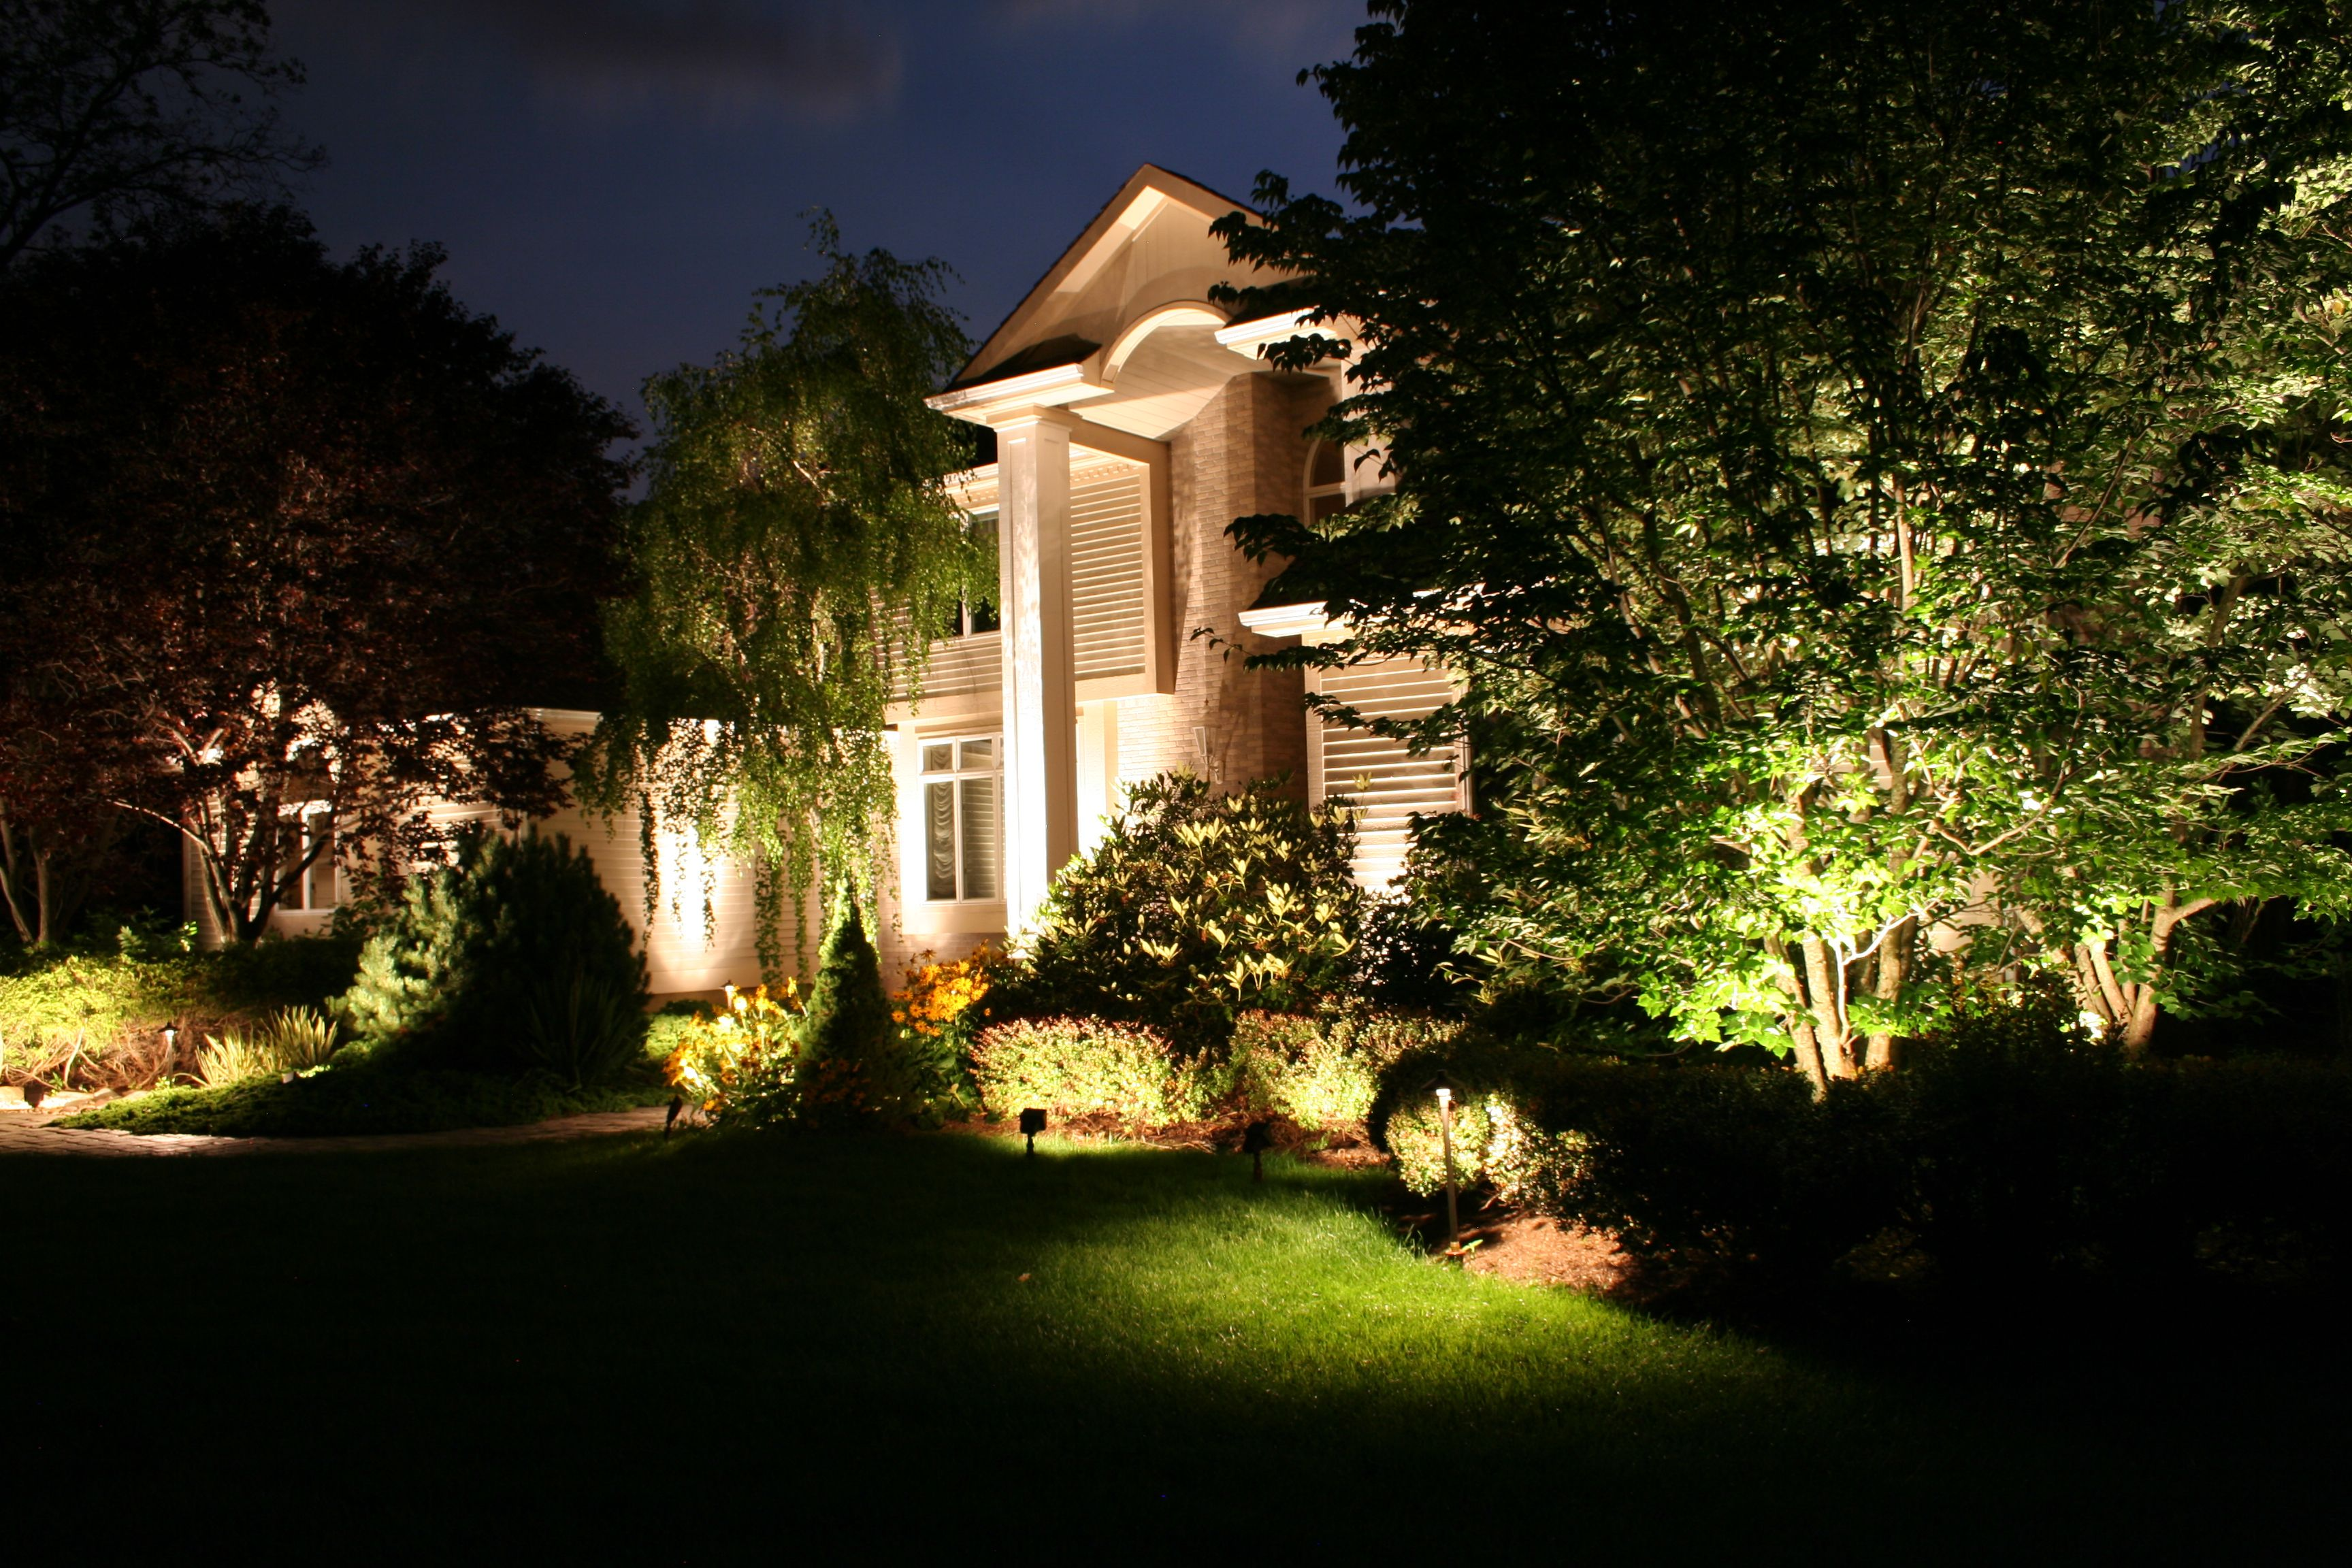 Landscape lighting manufacturer of solid bronze rugged premium-quality low voltage landscape lighting fixtures transformers wire bulbs and other outdoor ... & Michael Gotowala lighting designer at Preferred Properties ...